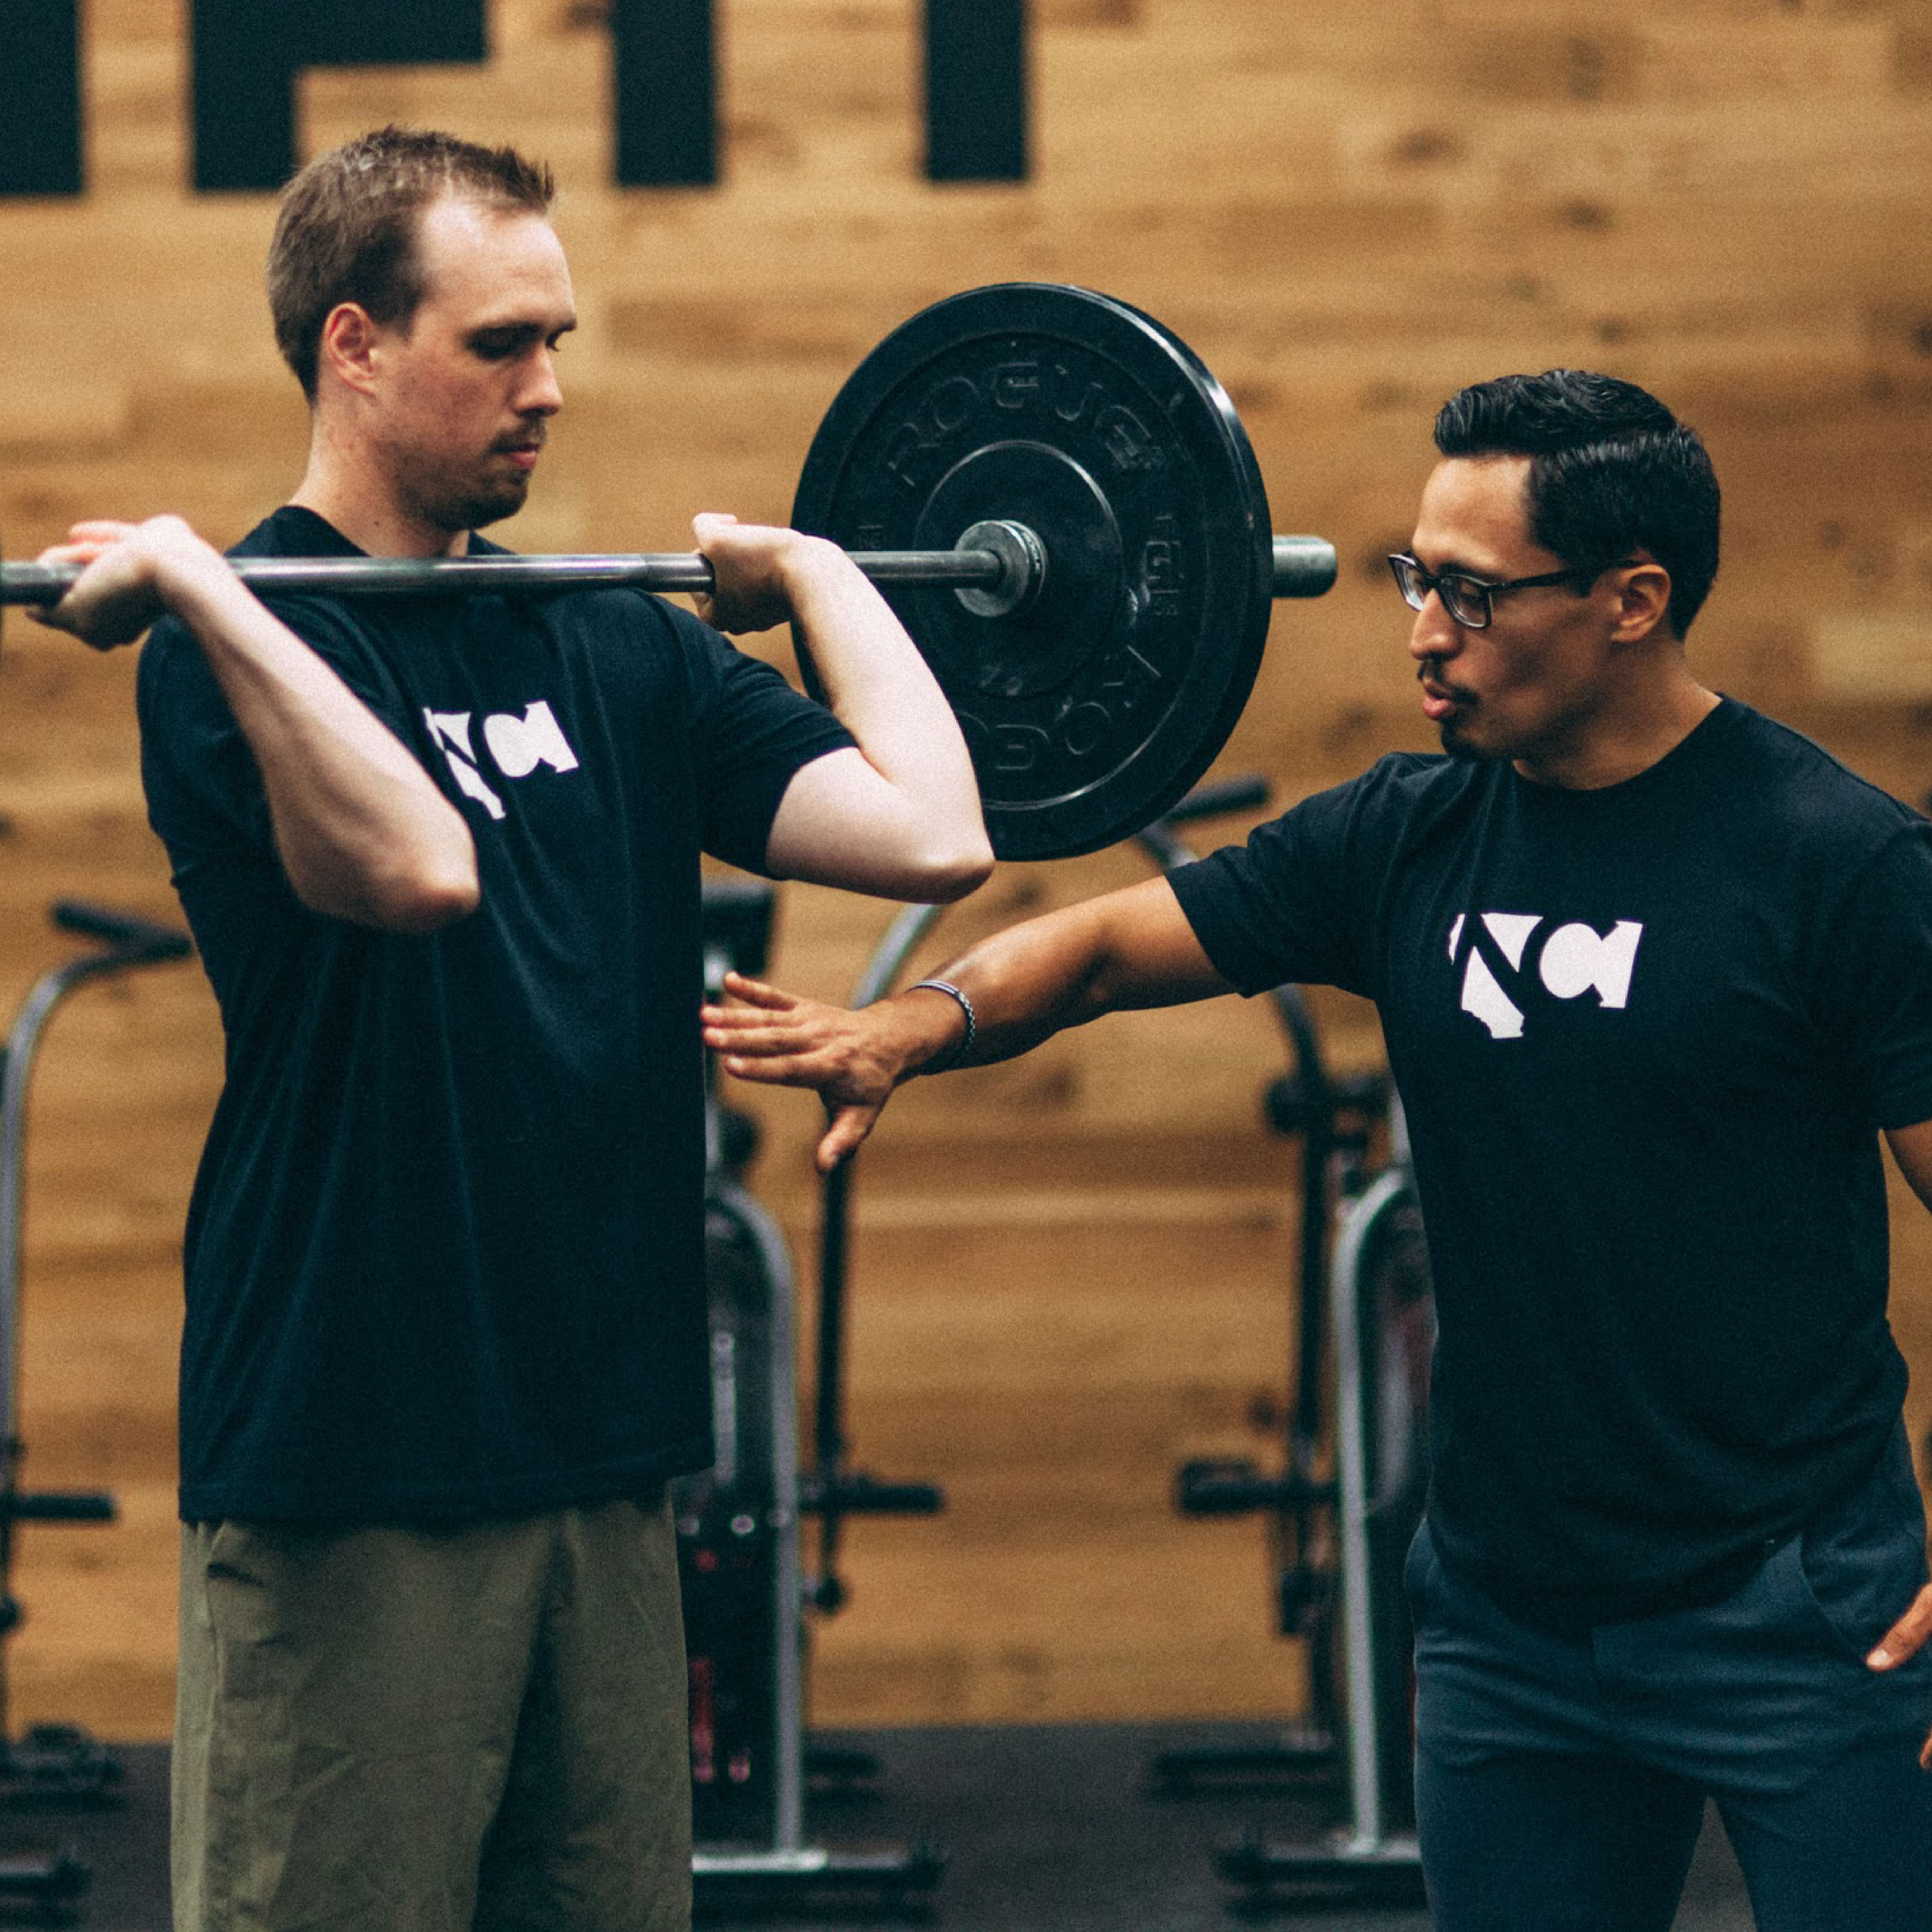 STEP 1.Pick Your Coach - Our Coaches are some of the best in the business. Explore the NCFIT Team!